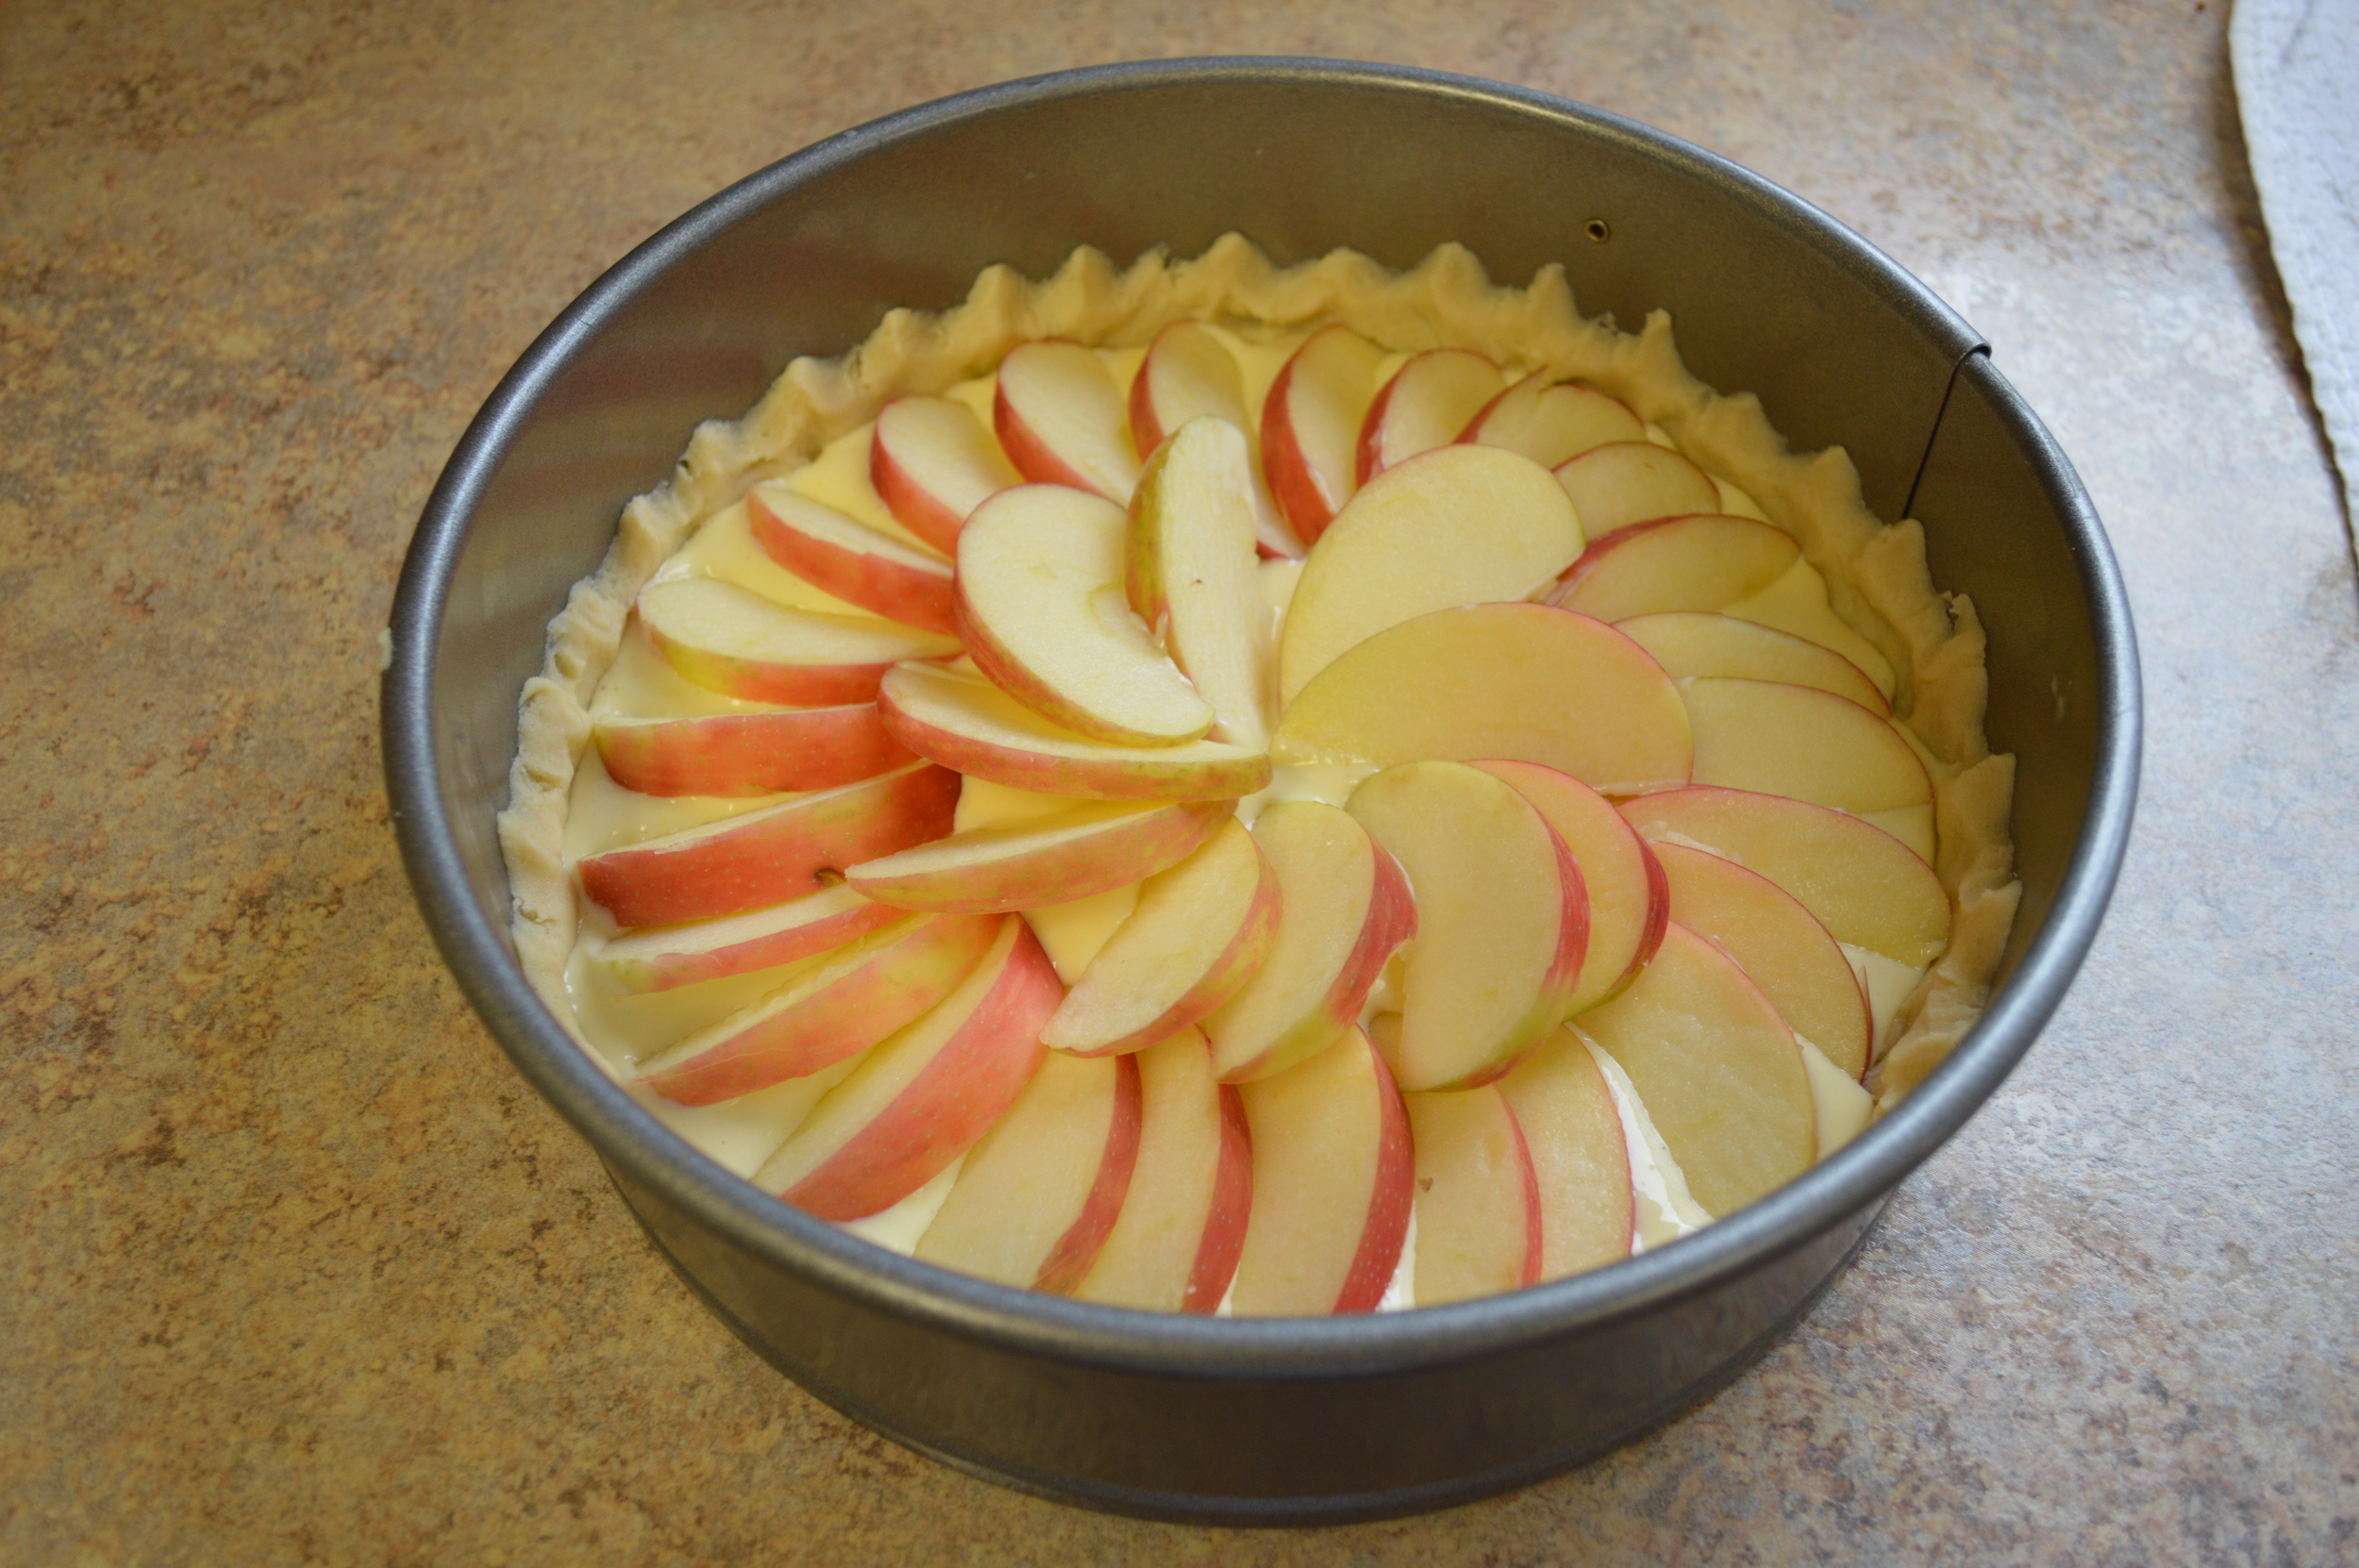 Filling and apples added...